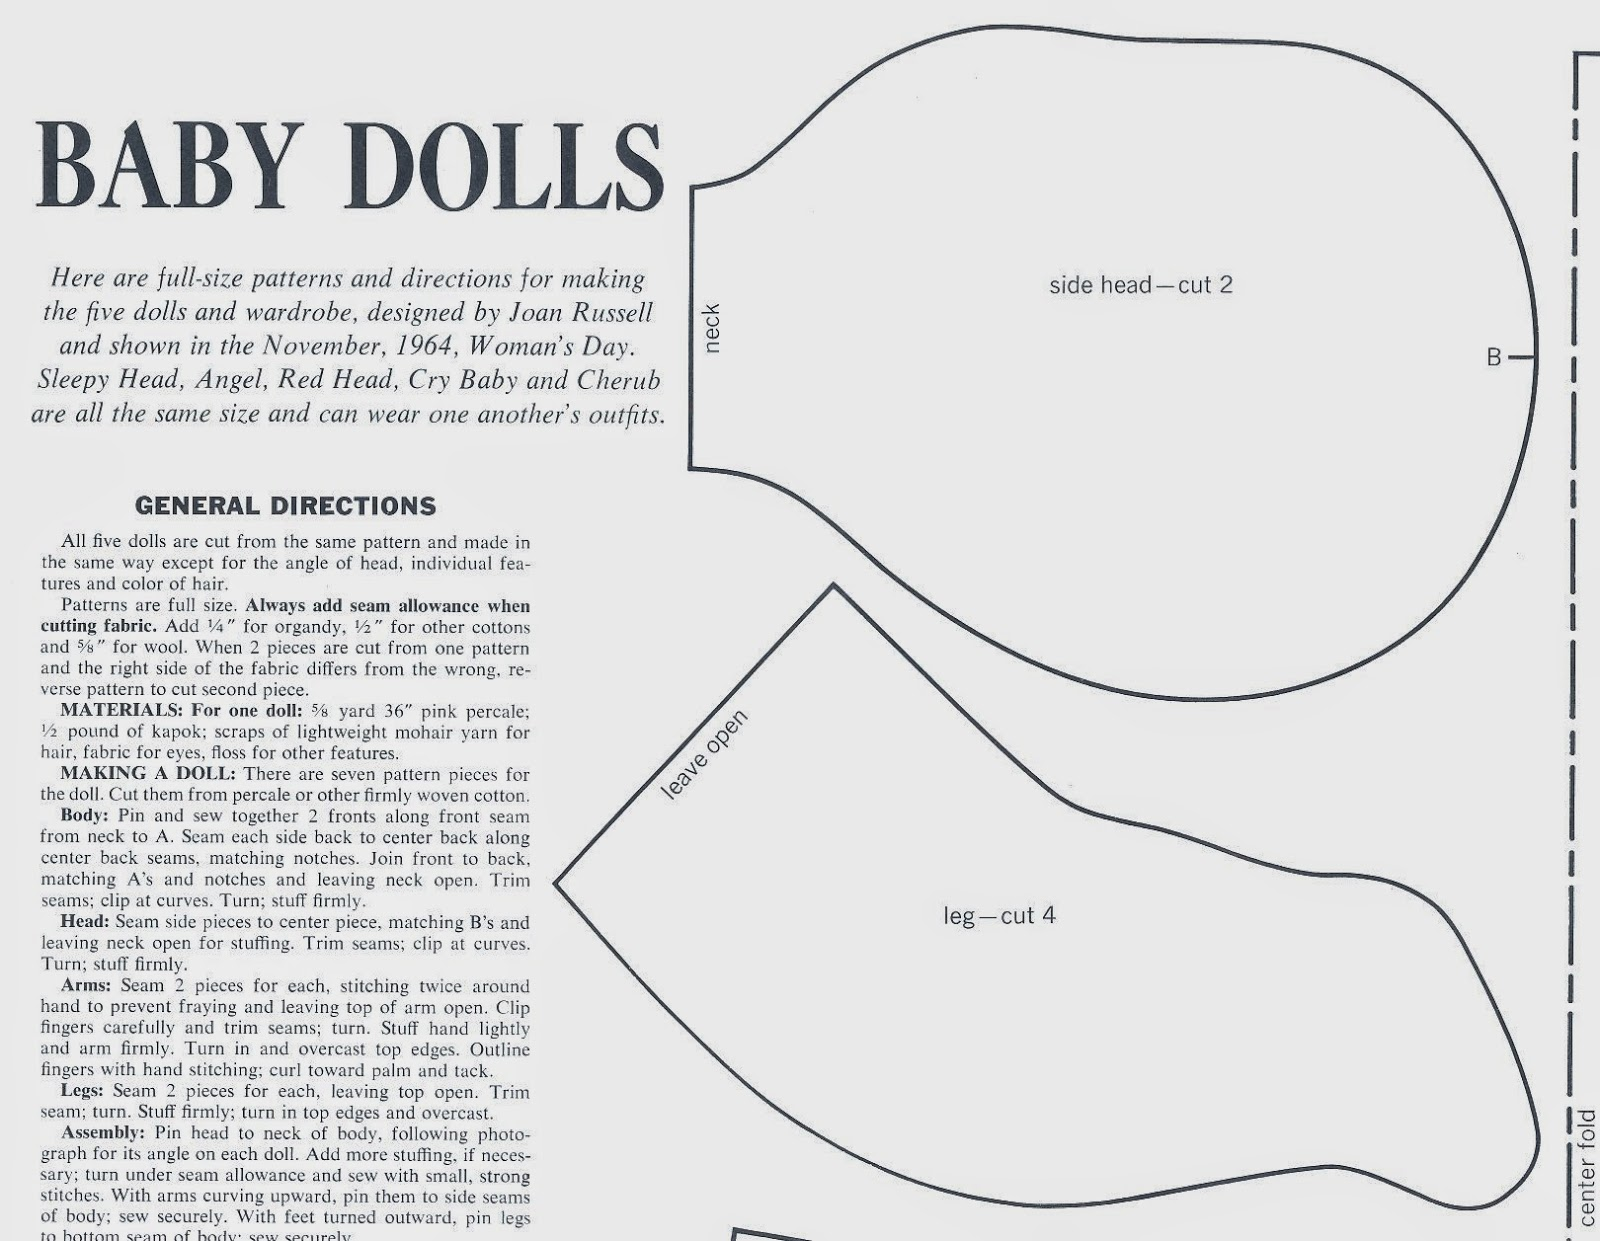 Vintage Cloth Doll Patterns Baby Dolls by Joan Russell for Woman s